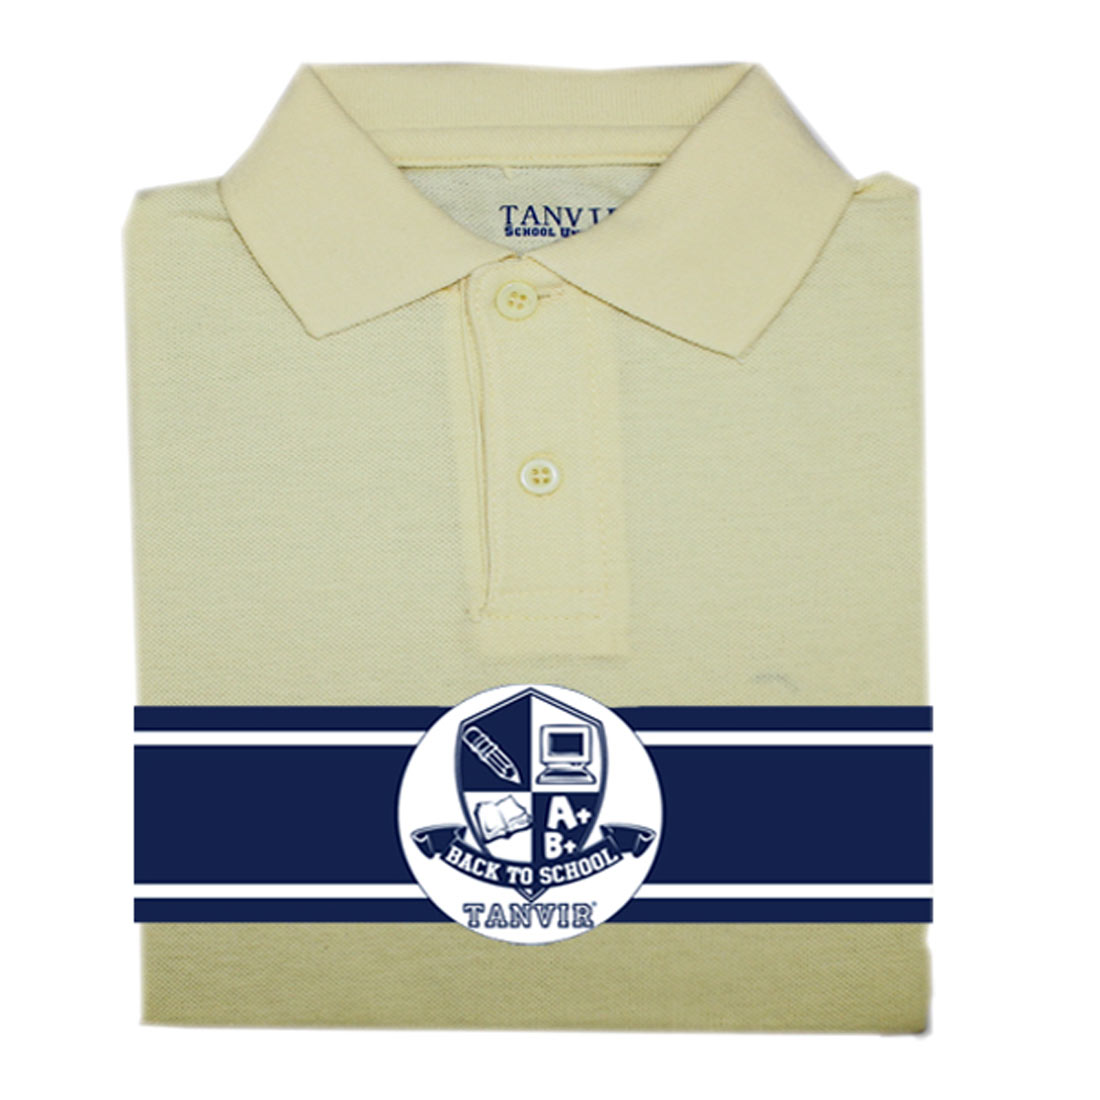 Girls Picot Polo Yellow Tanvir 2-4